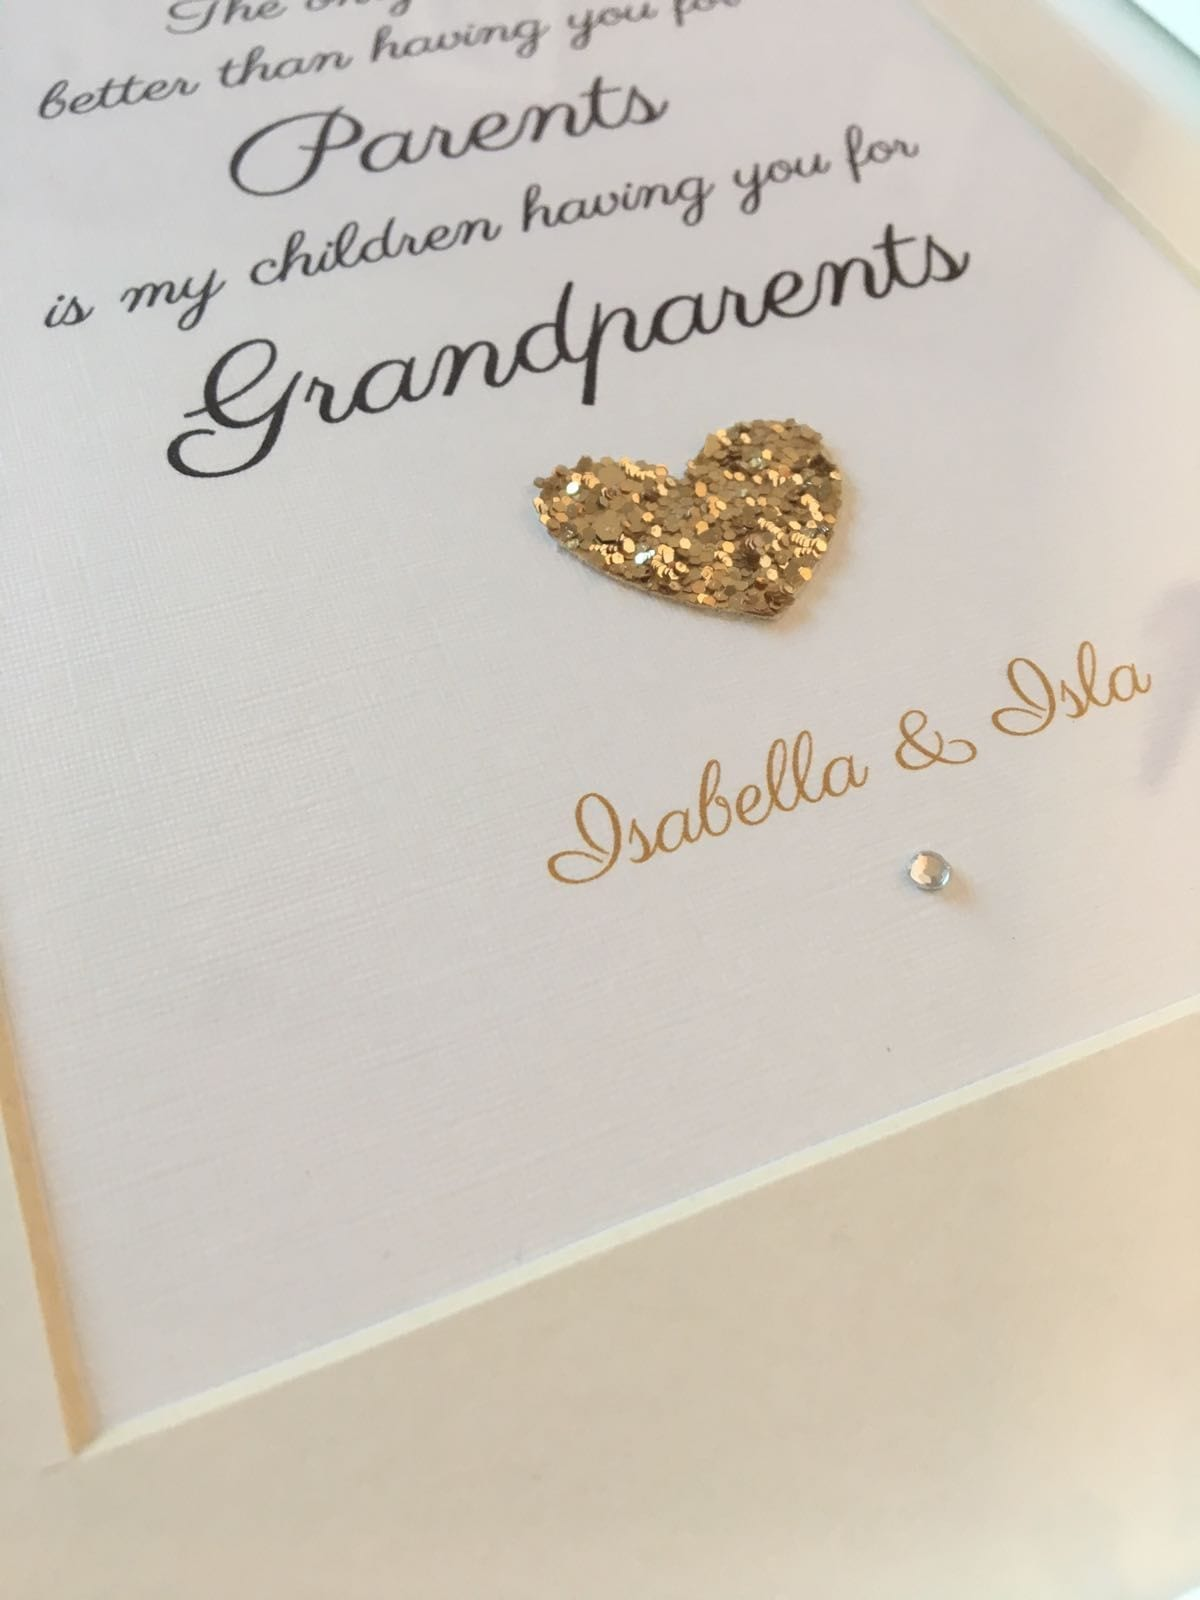 grandparents-the-only-thing-better-flat-framed-print-with-glitter-heart-[2]-13068-p.jpg